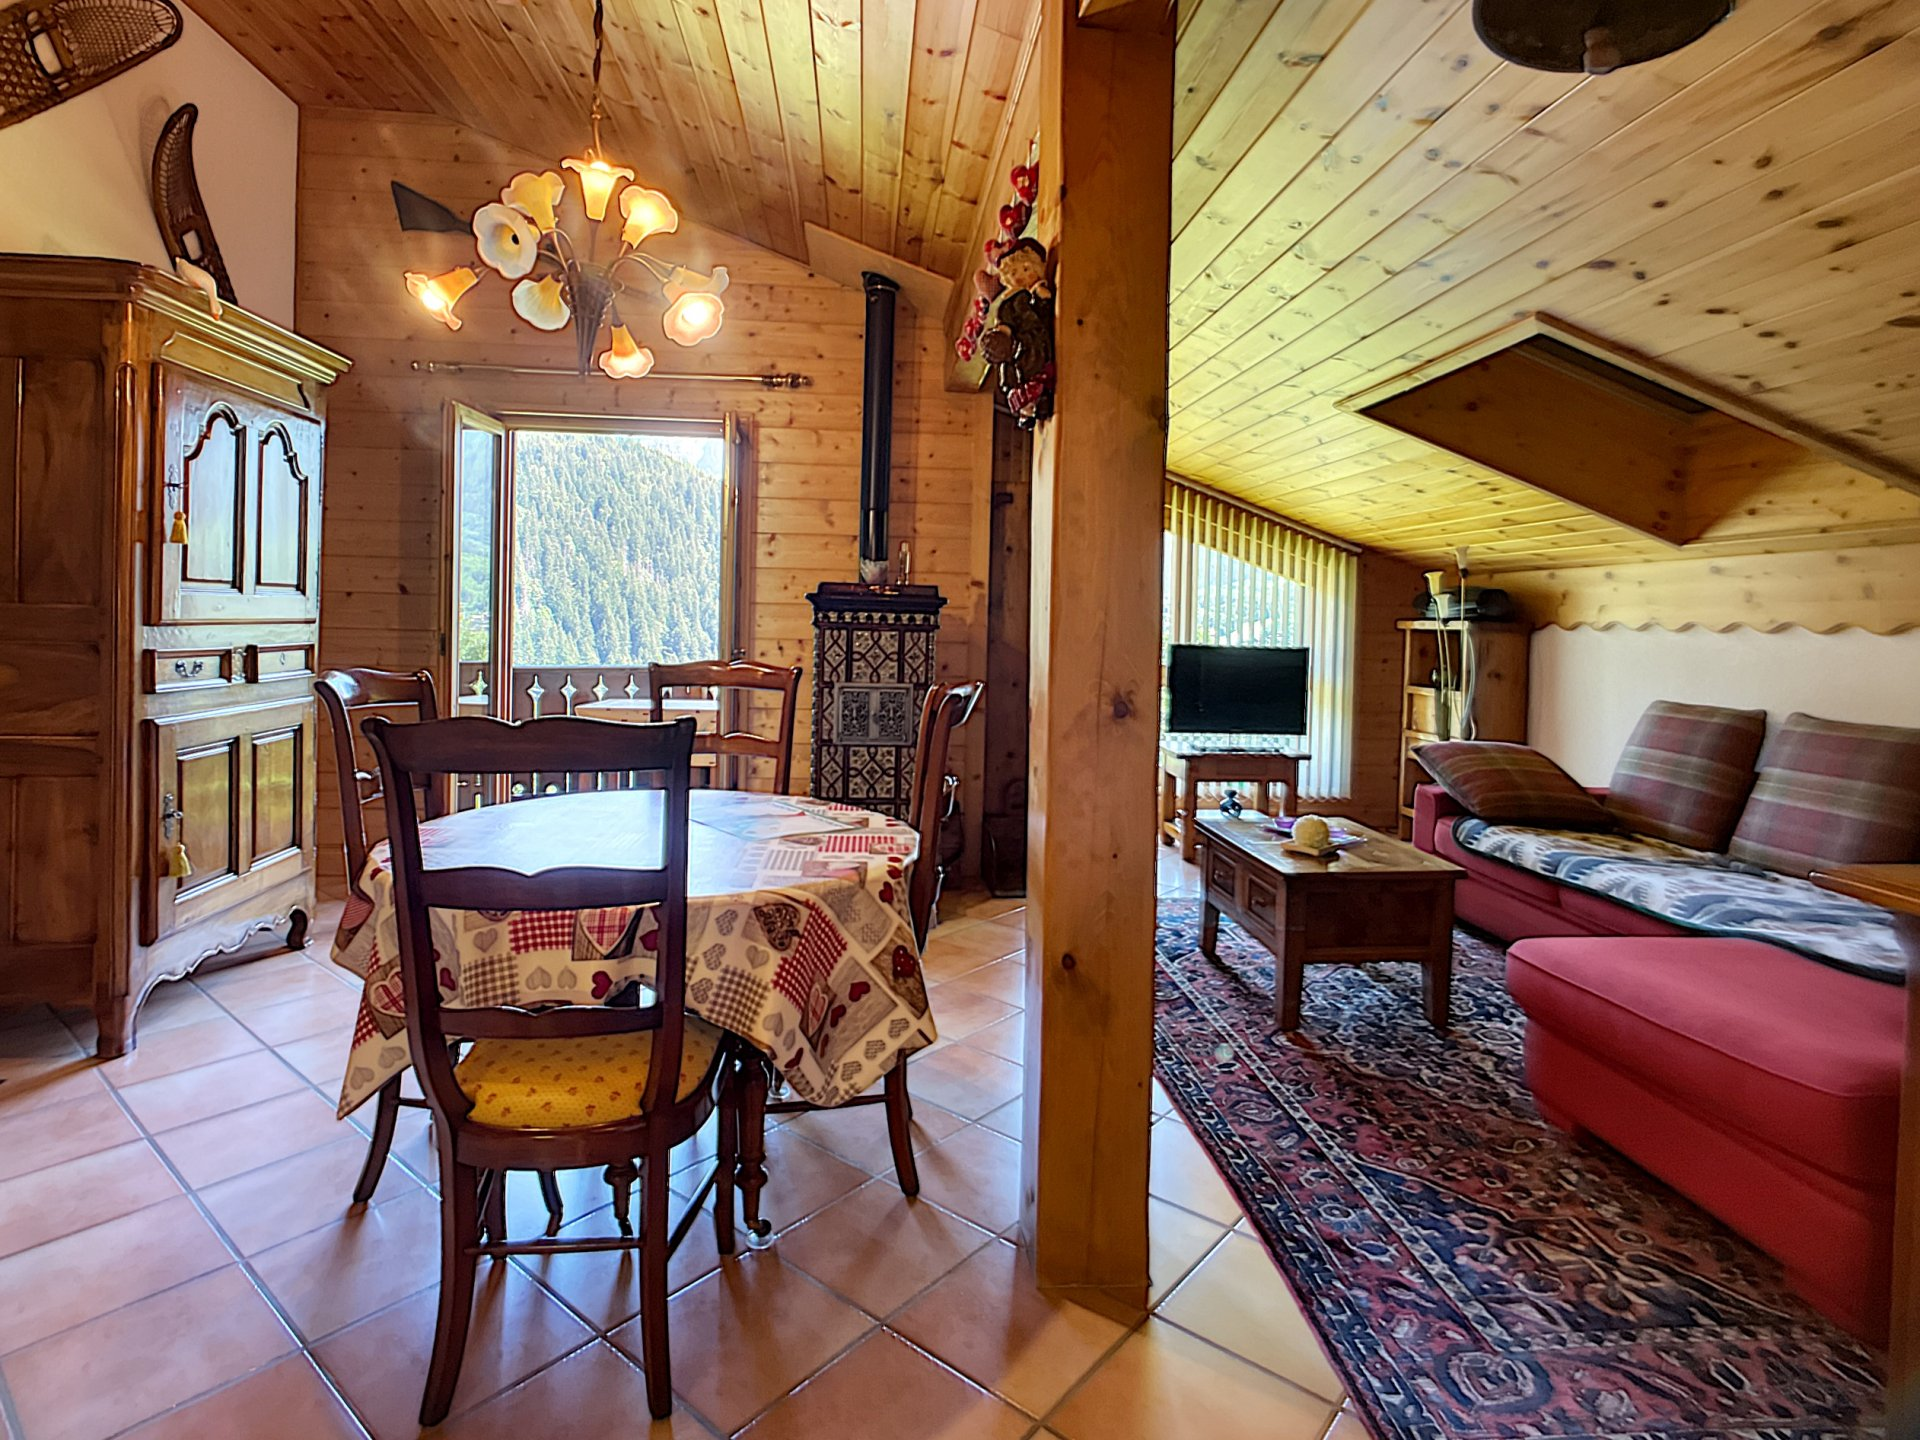 2 bedroom apartment, Les Houches